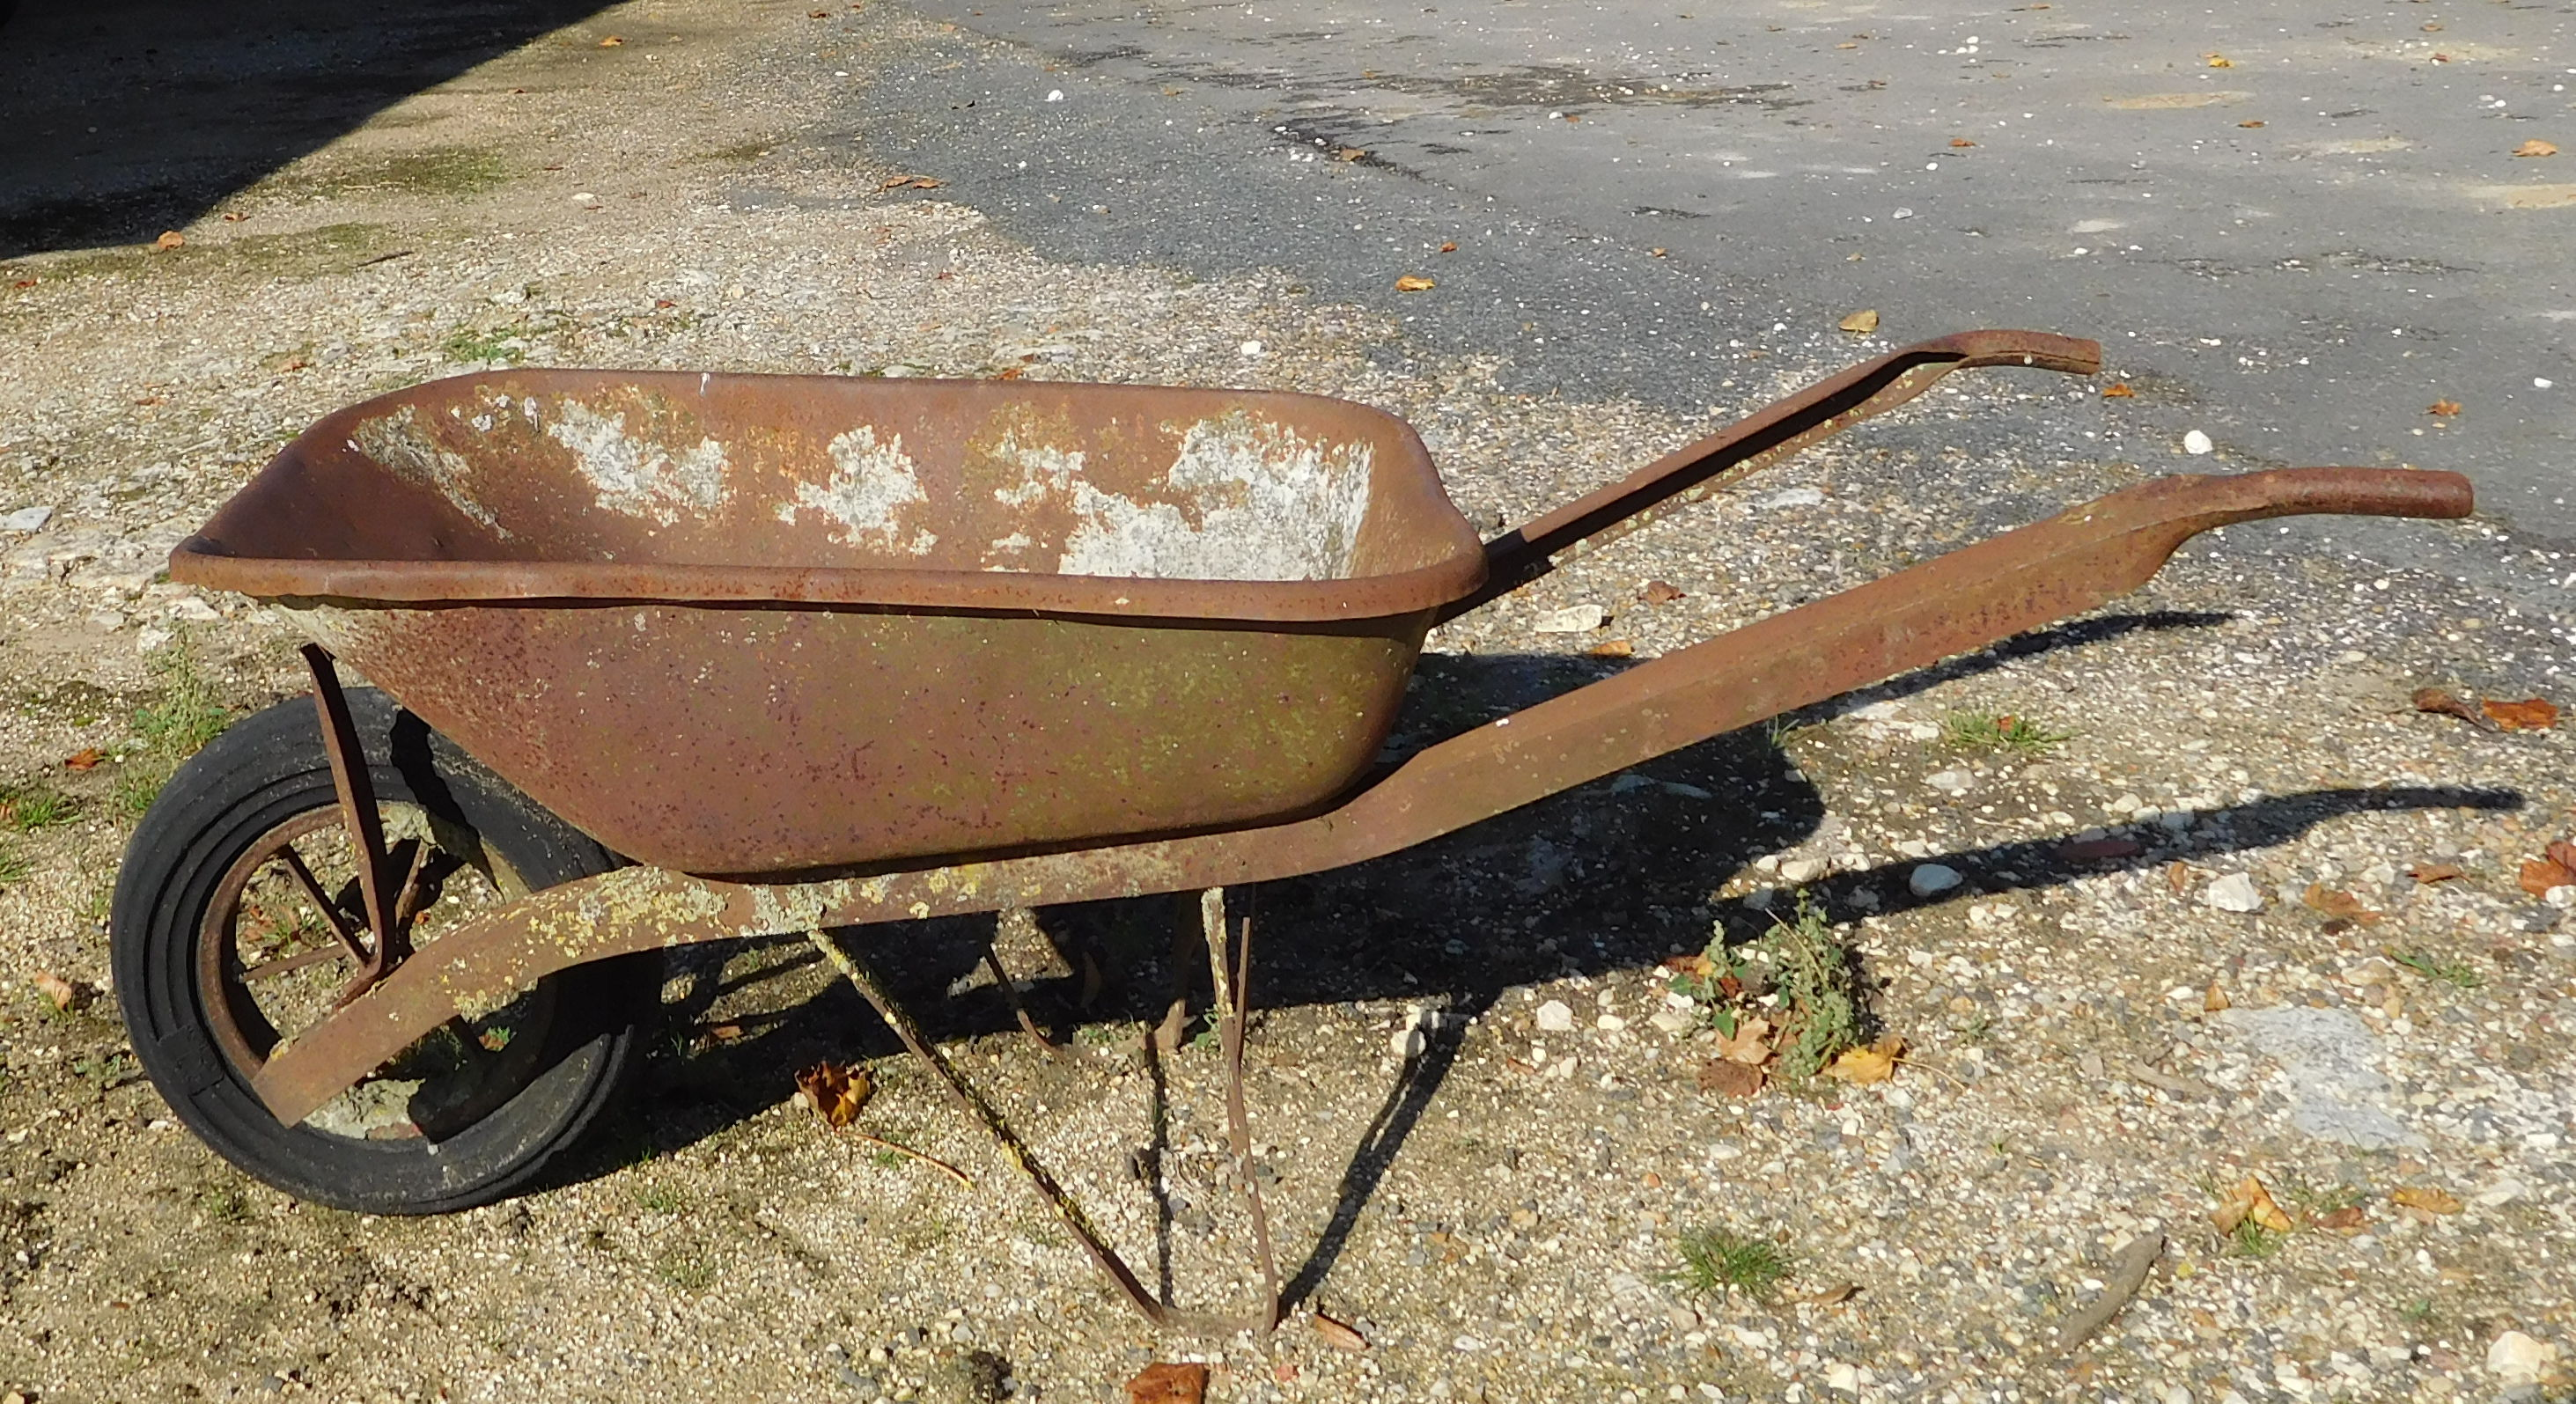 File:Rusty wheelbarrow.jpg - Wikimedia Commons